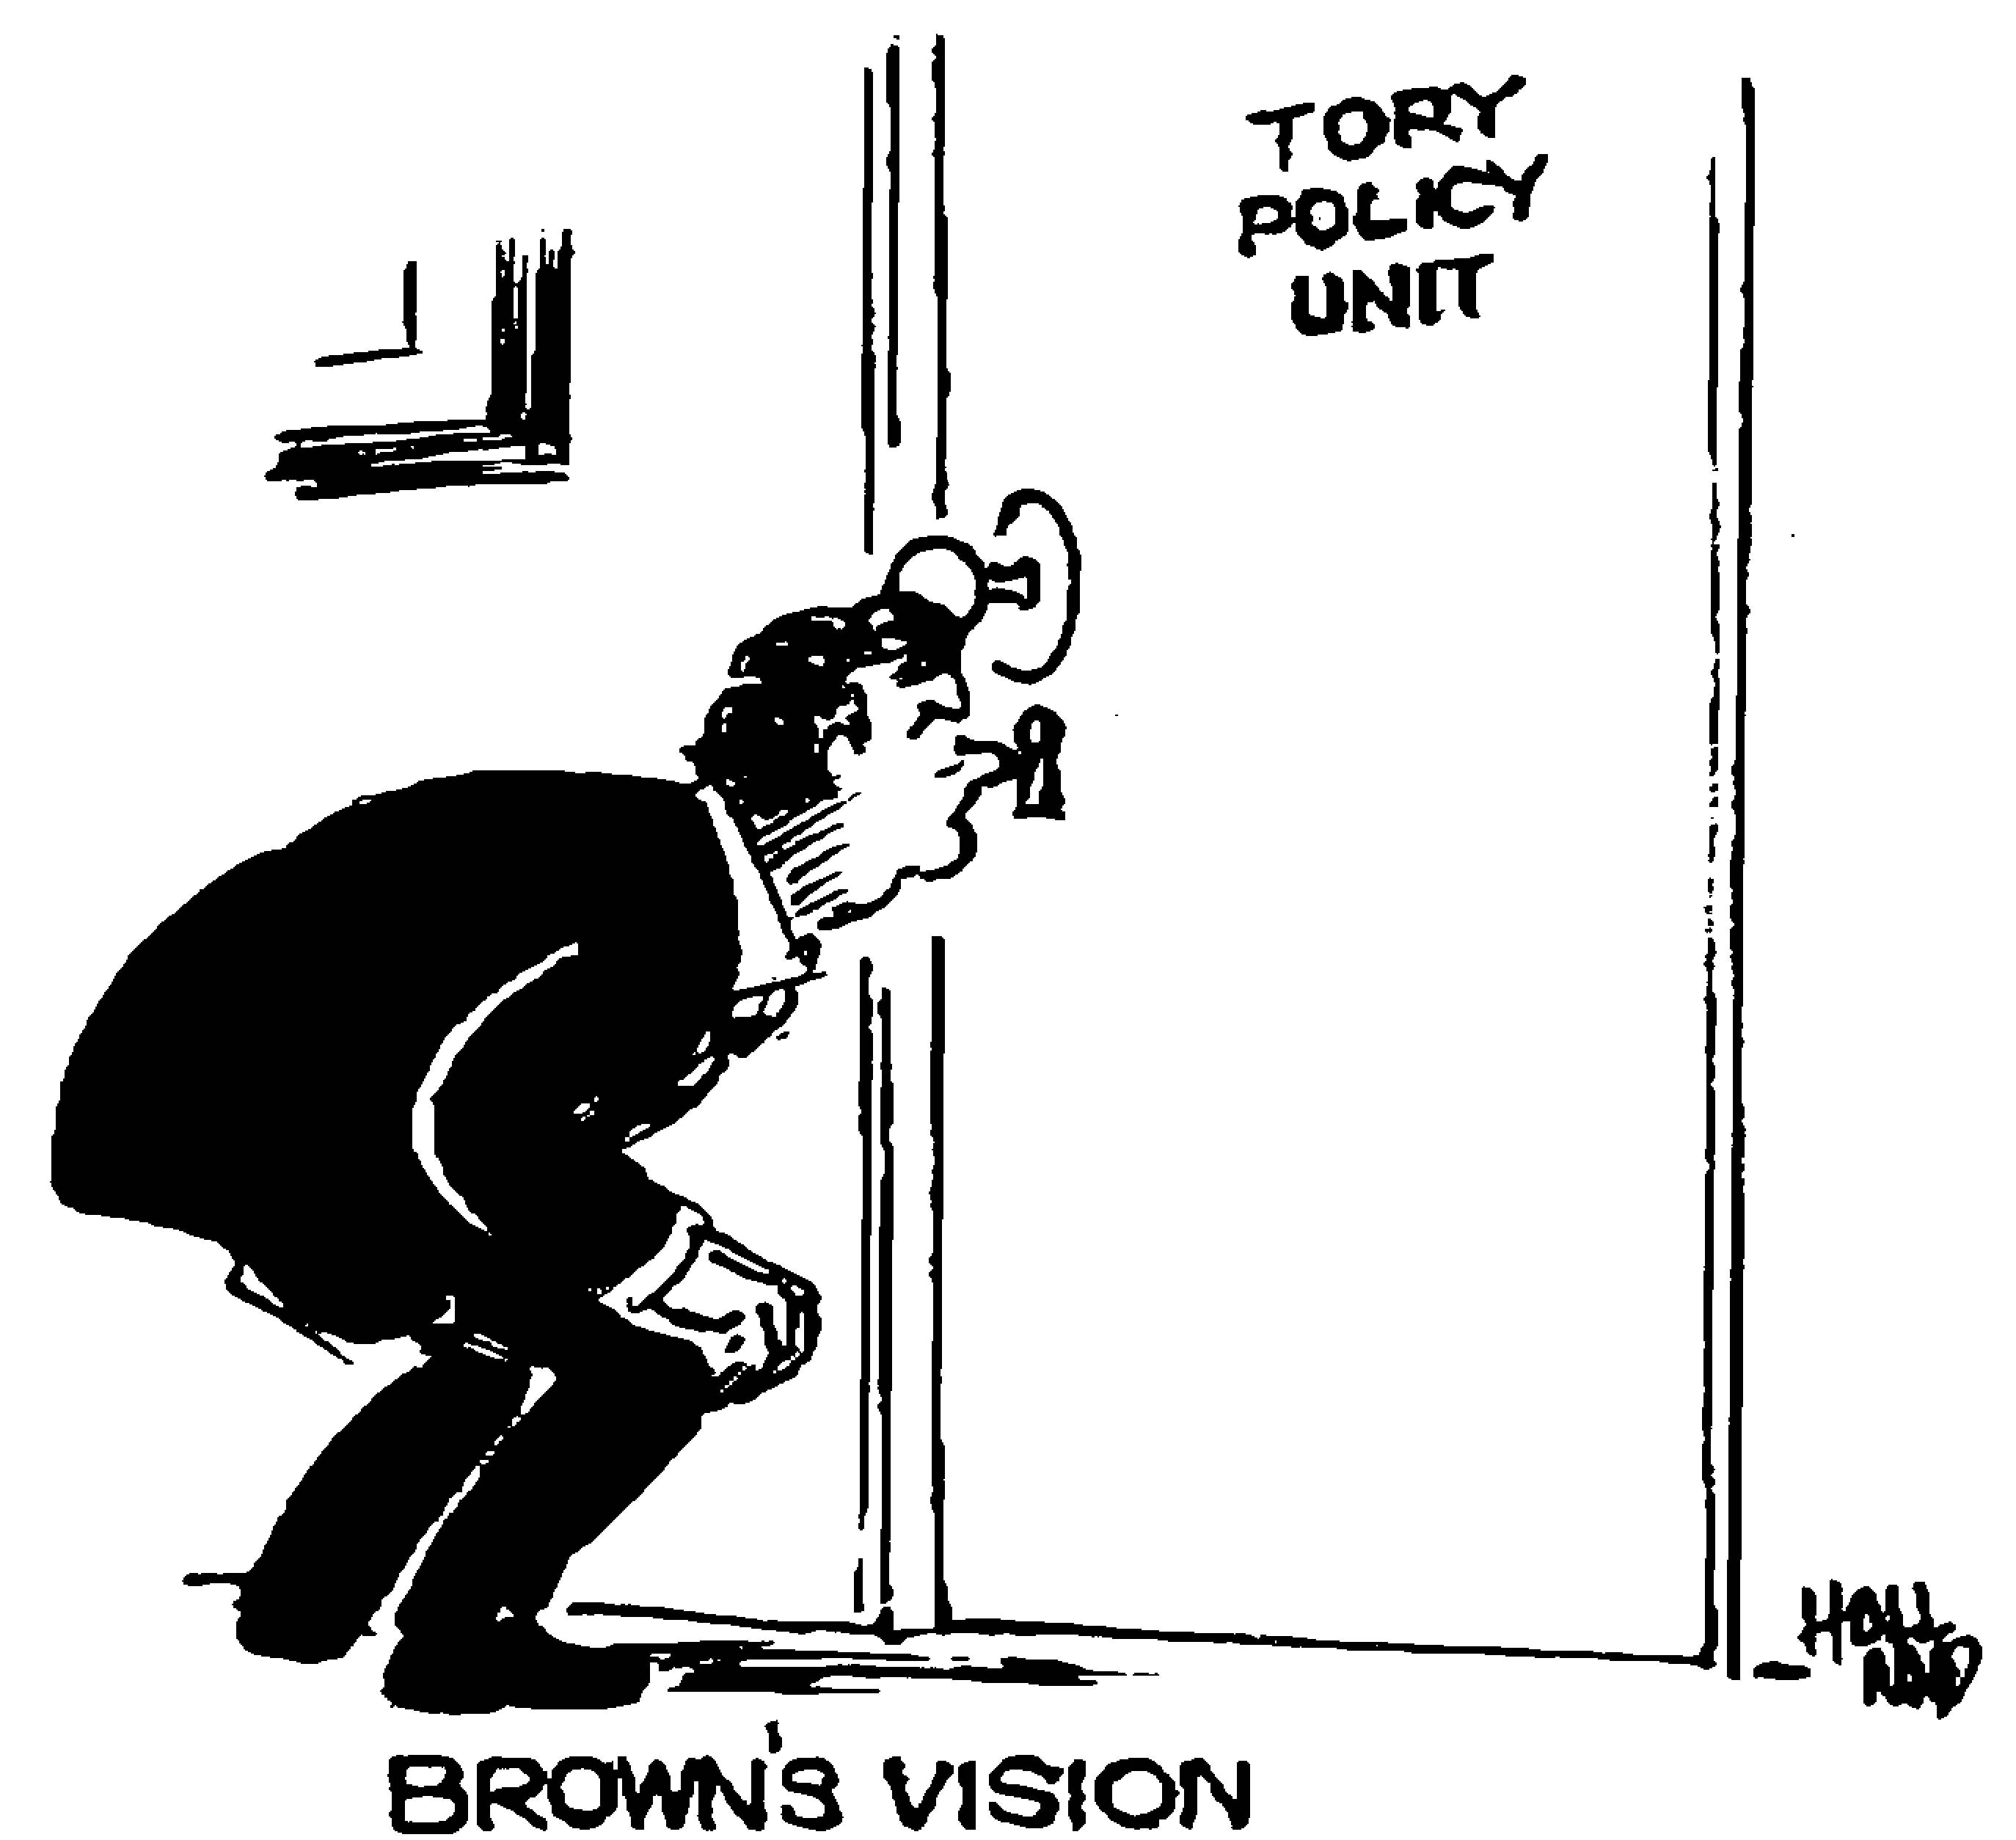 'The largest thorn in the side of Gordon Brown'